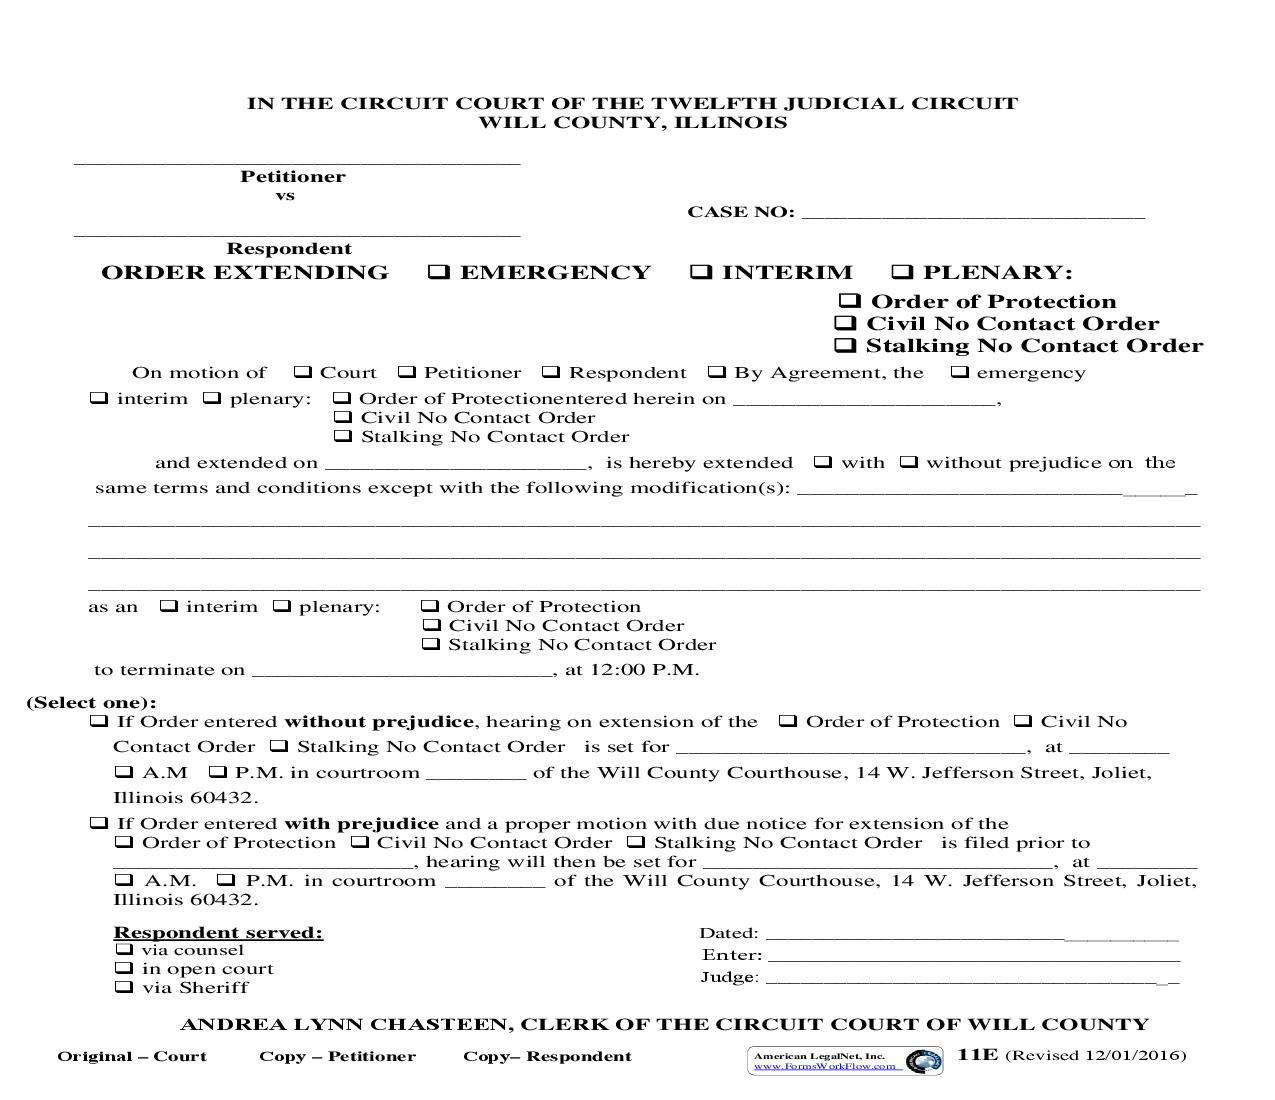 Order Extending Emergency Interim Or Plenary Order Of Protection Or Civil No Contact Order {11E} | Pdf Fpdf Doc Docx | Illinois